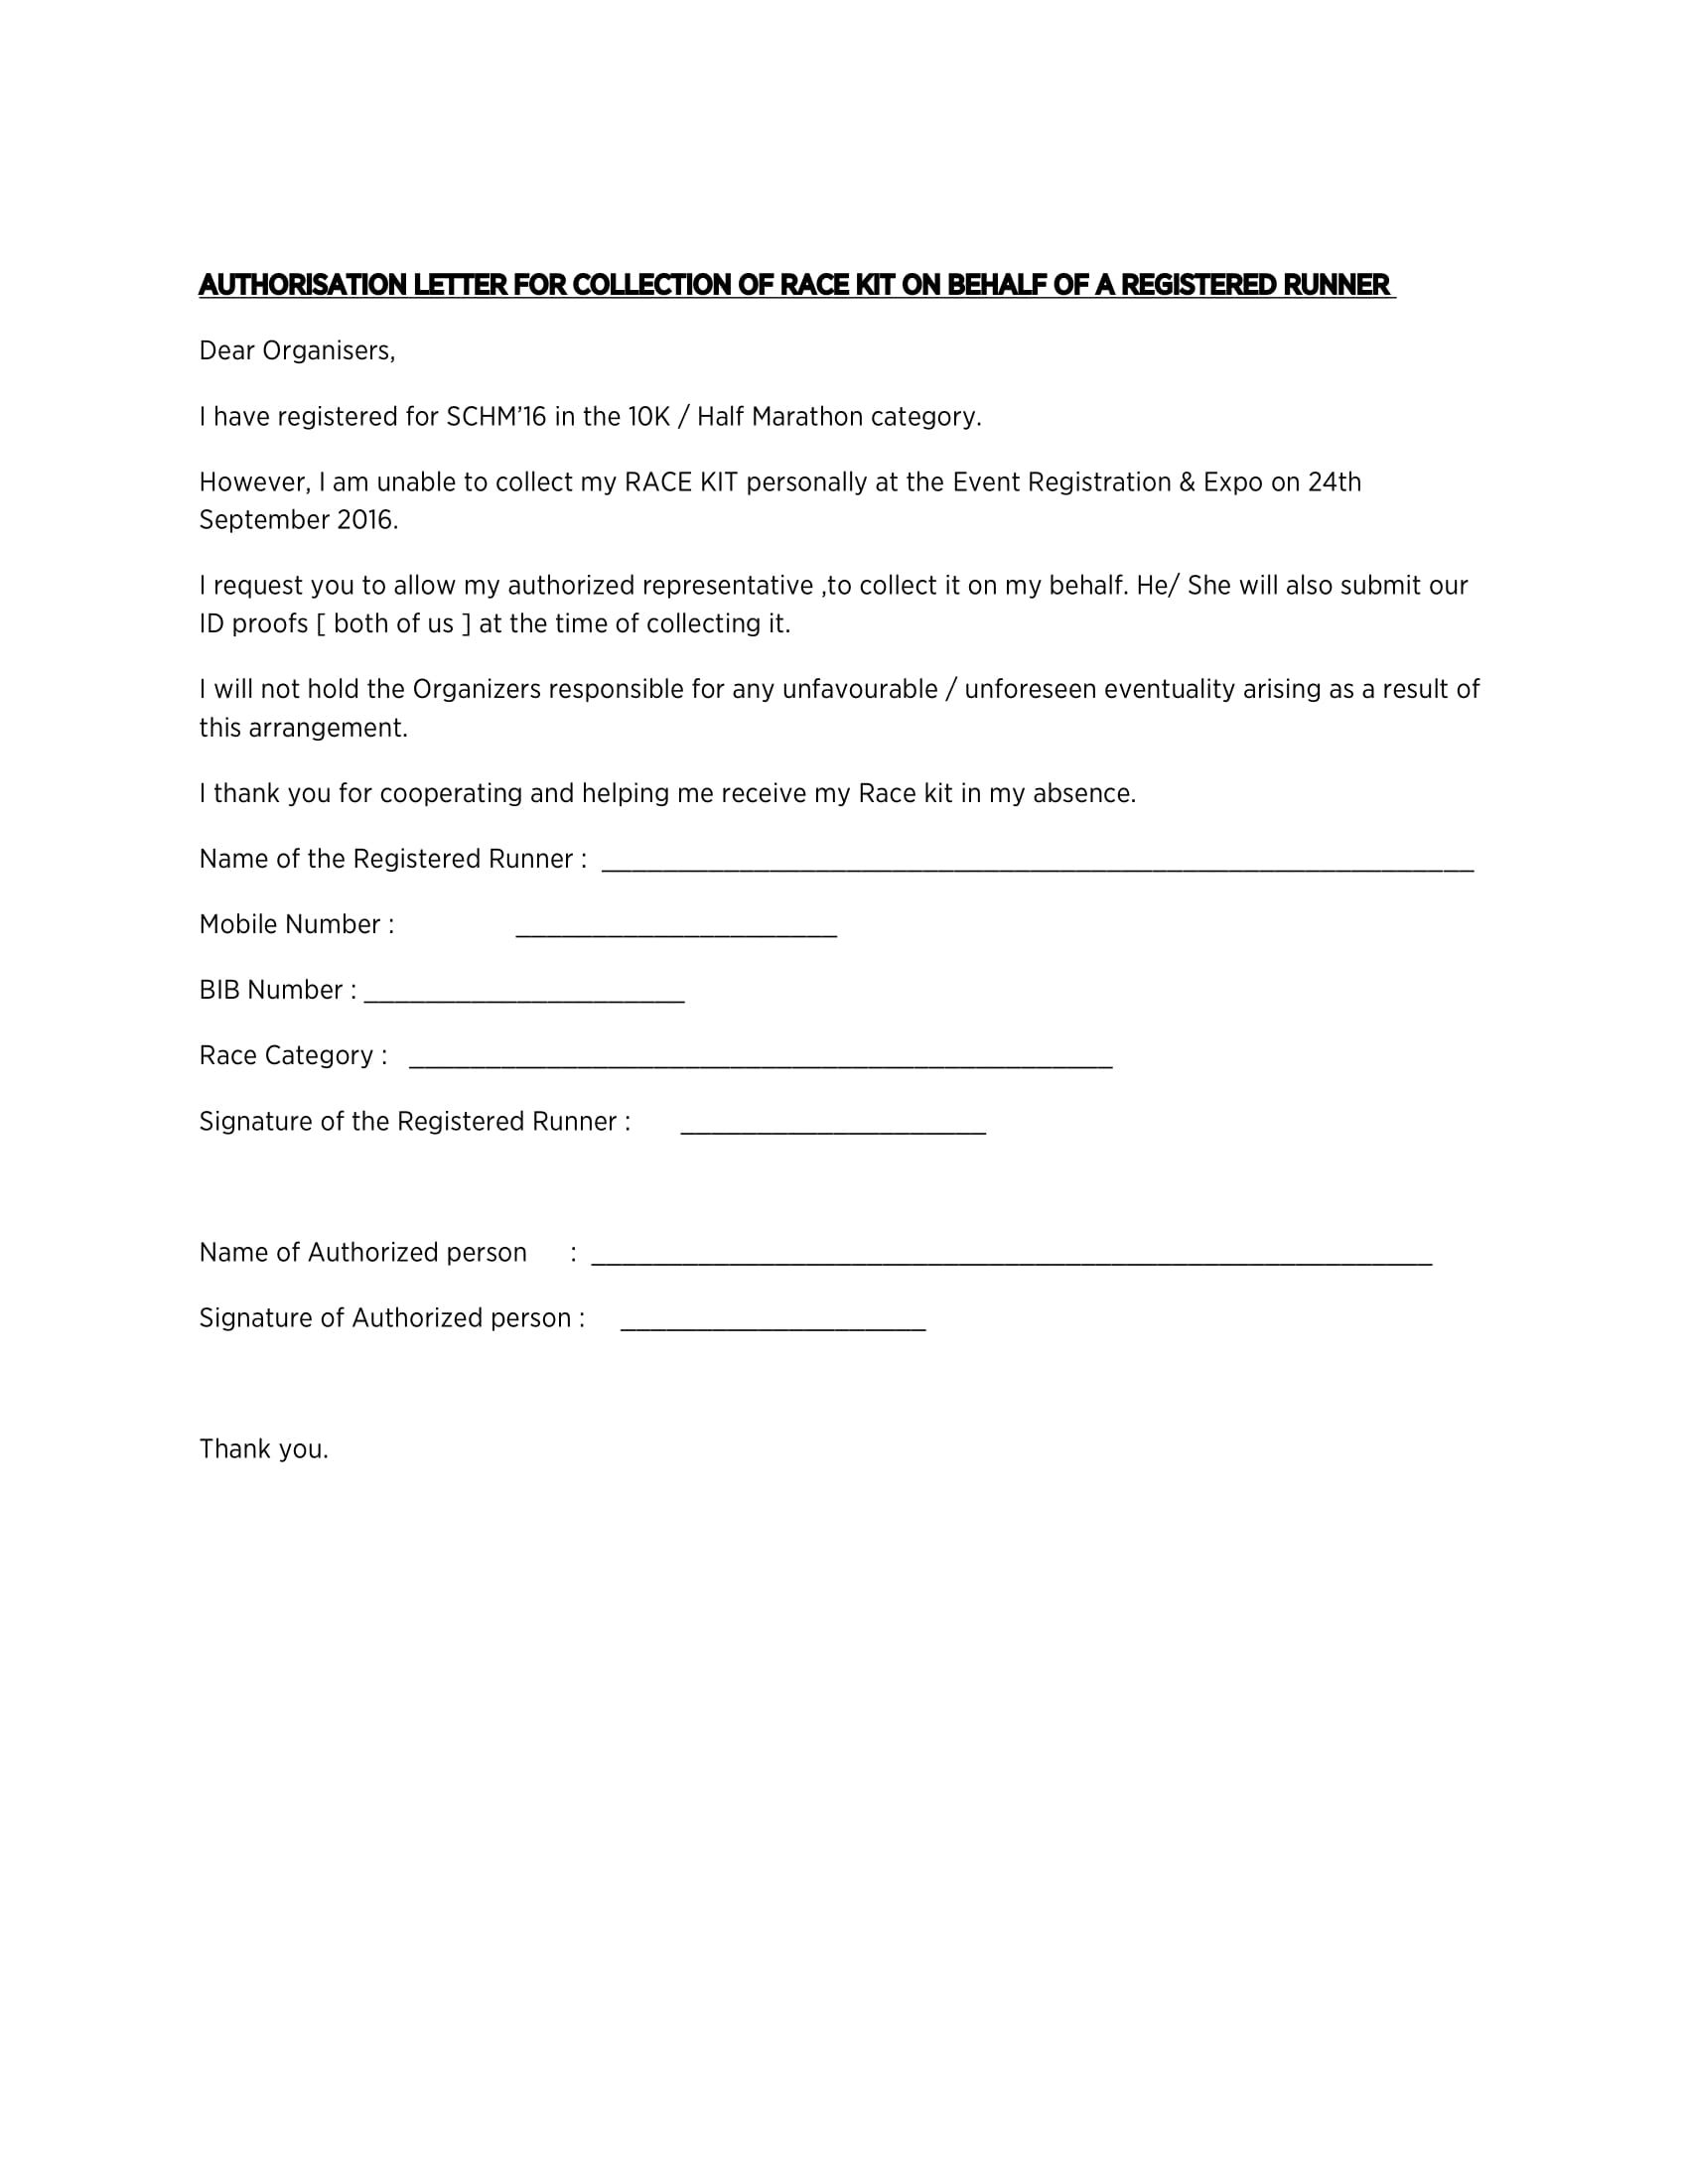 authorization letter to collect and receive race kit in behalf of a registered runner example 1